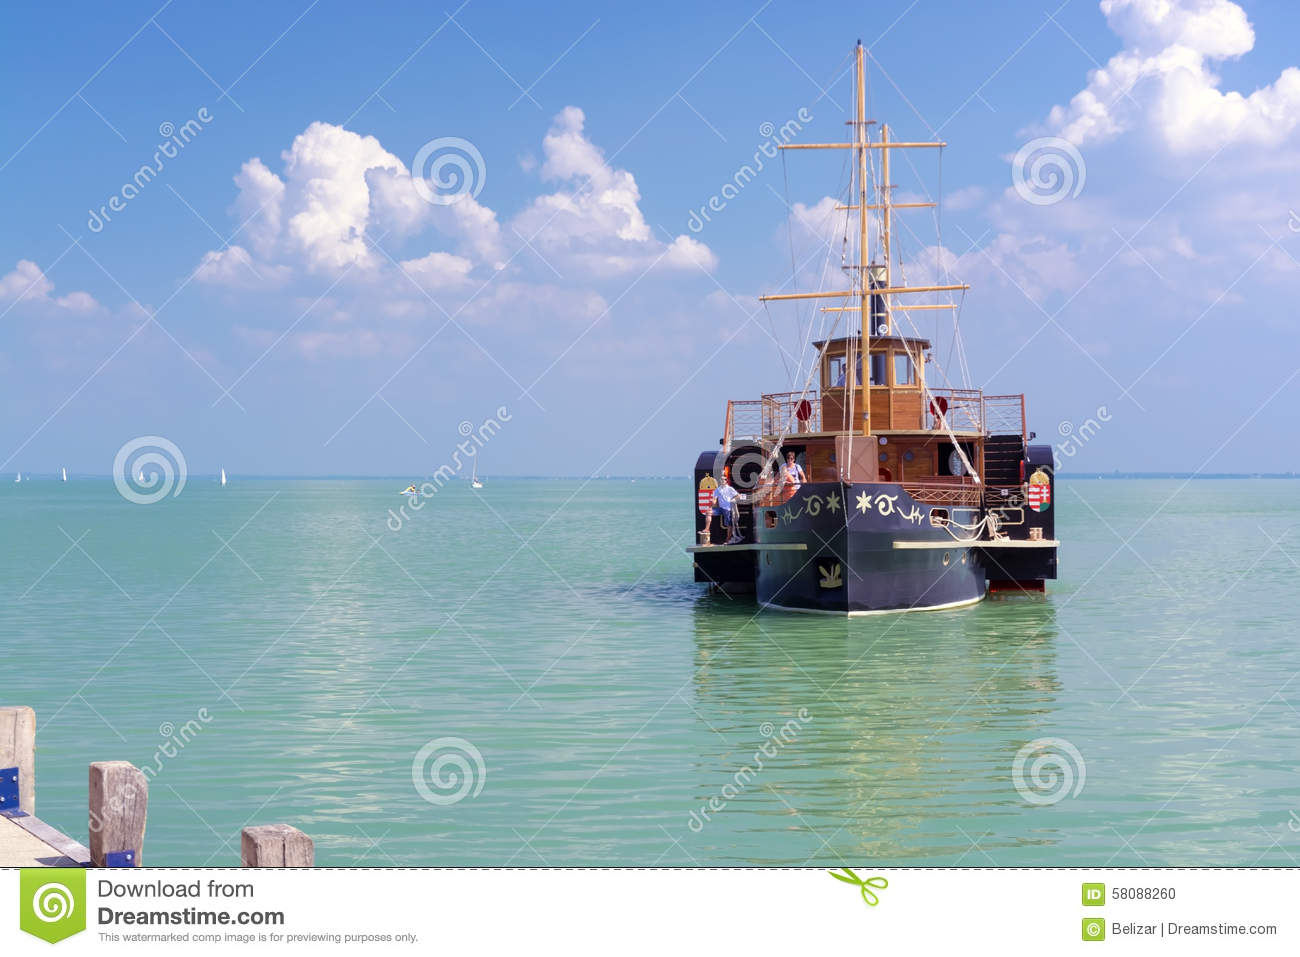 Balatonfured Hungary  City pictures : BALATONFURED, HUNGARY AUGUST 4. 2015 the old steamship Kisfaludy ...